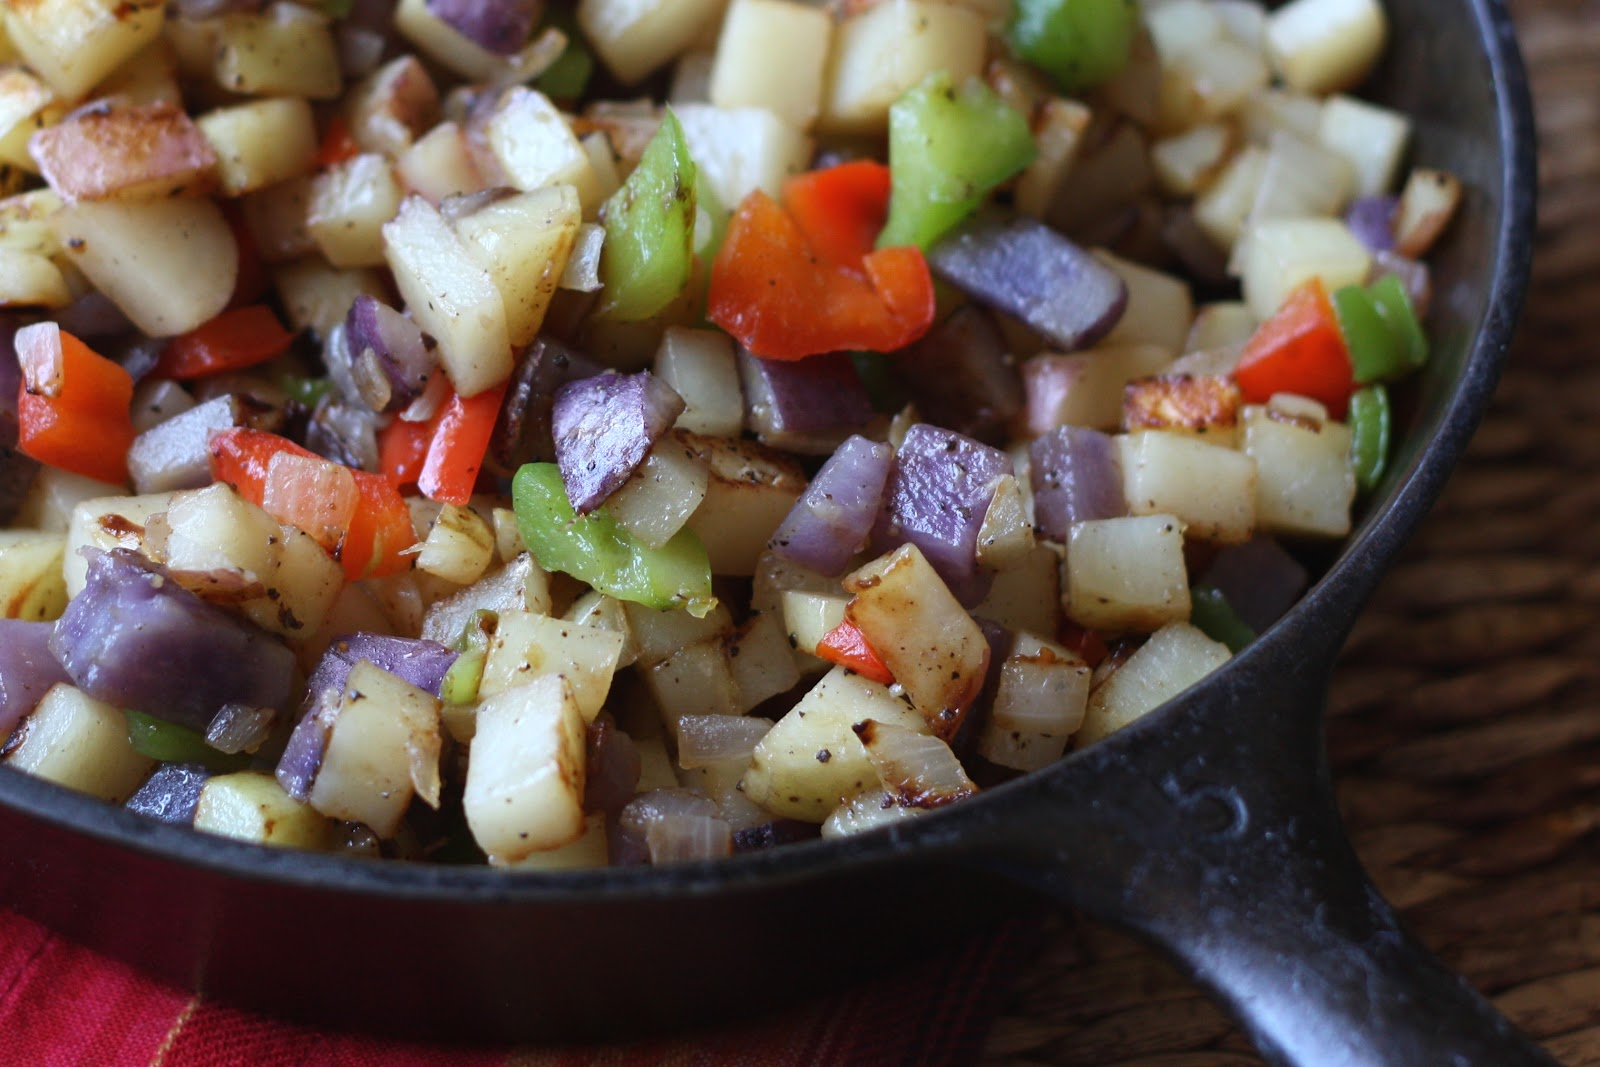 Barefeet In The Kitchen: Skillet Potatoes with Peppers and Onions